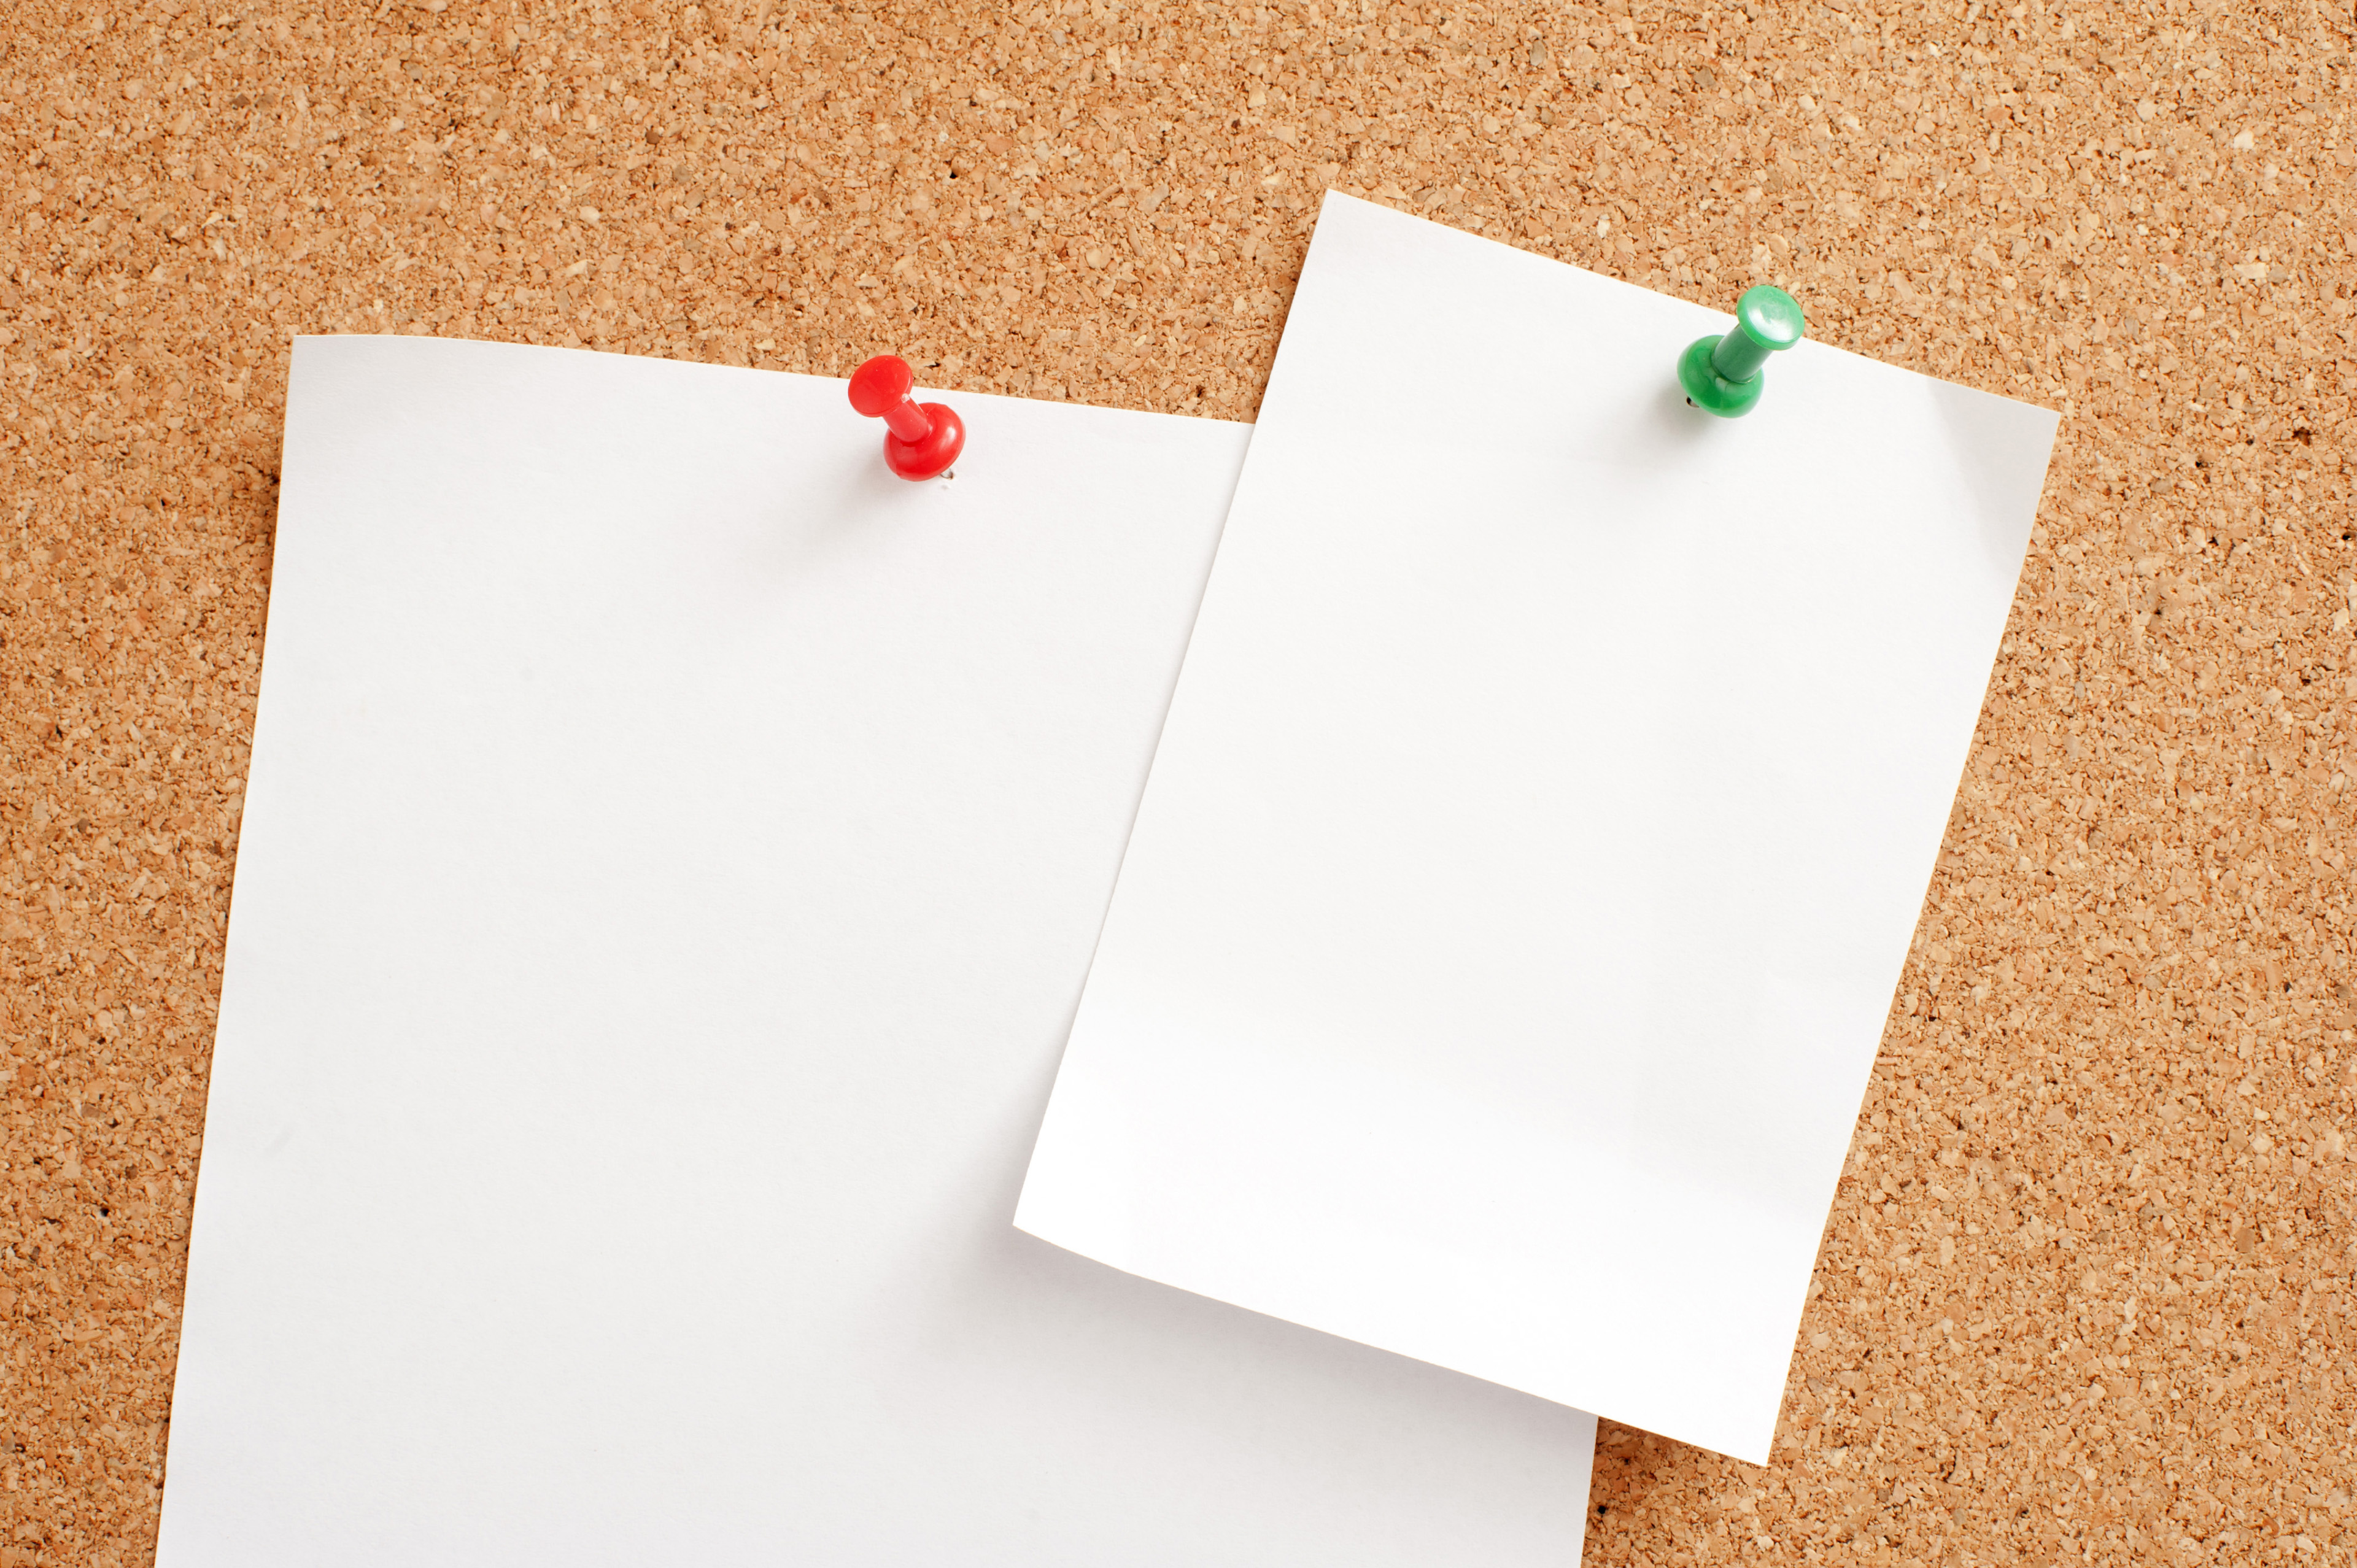 Two Blank White Notice Papers Pinned on Brown Cork Board, Emphasizing Copy Space.